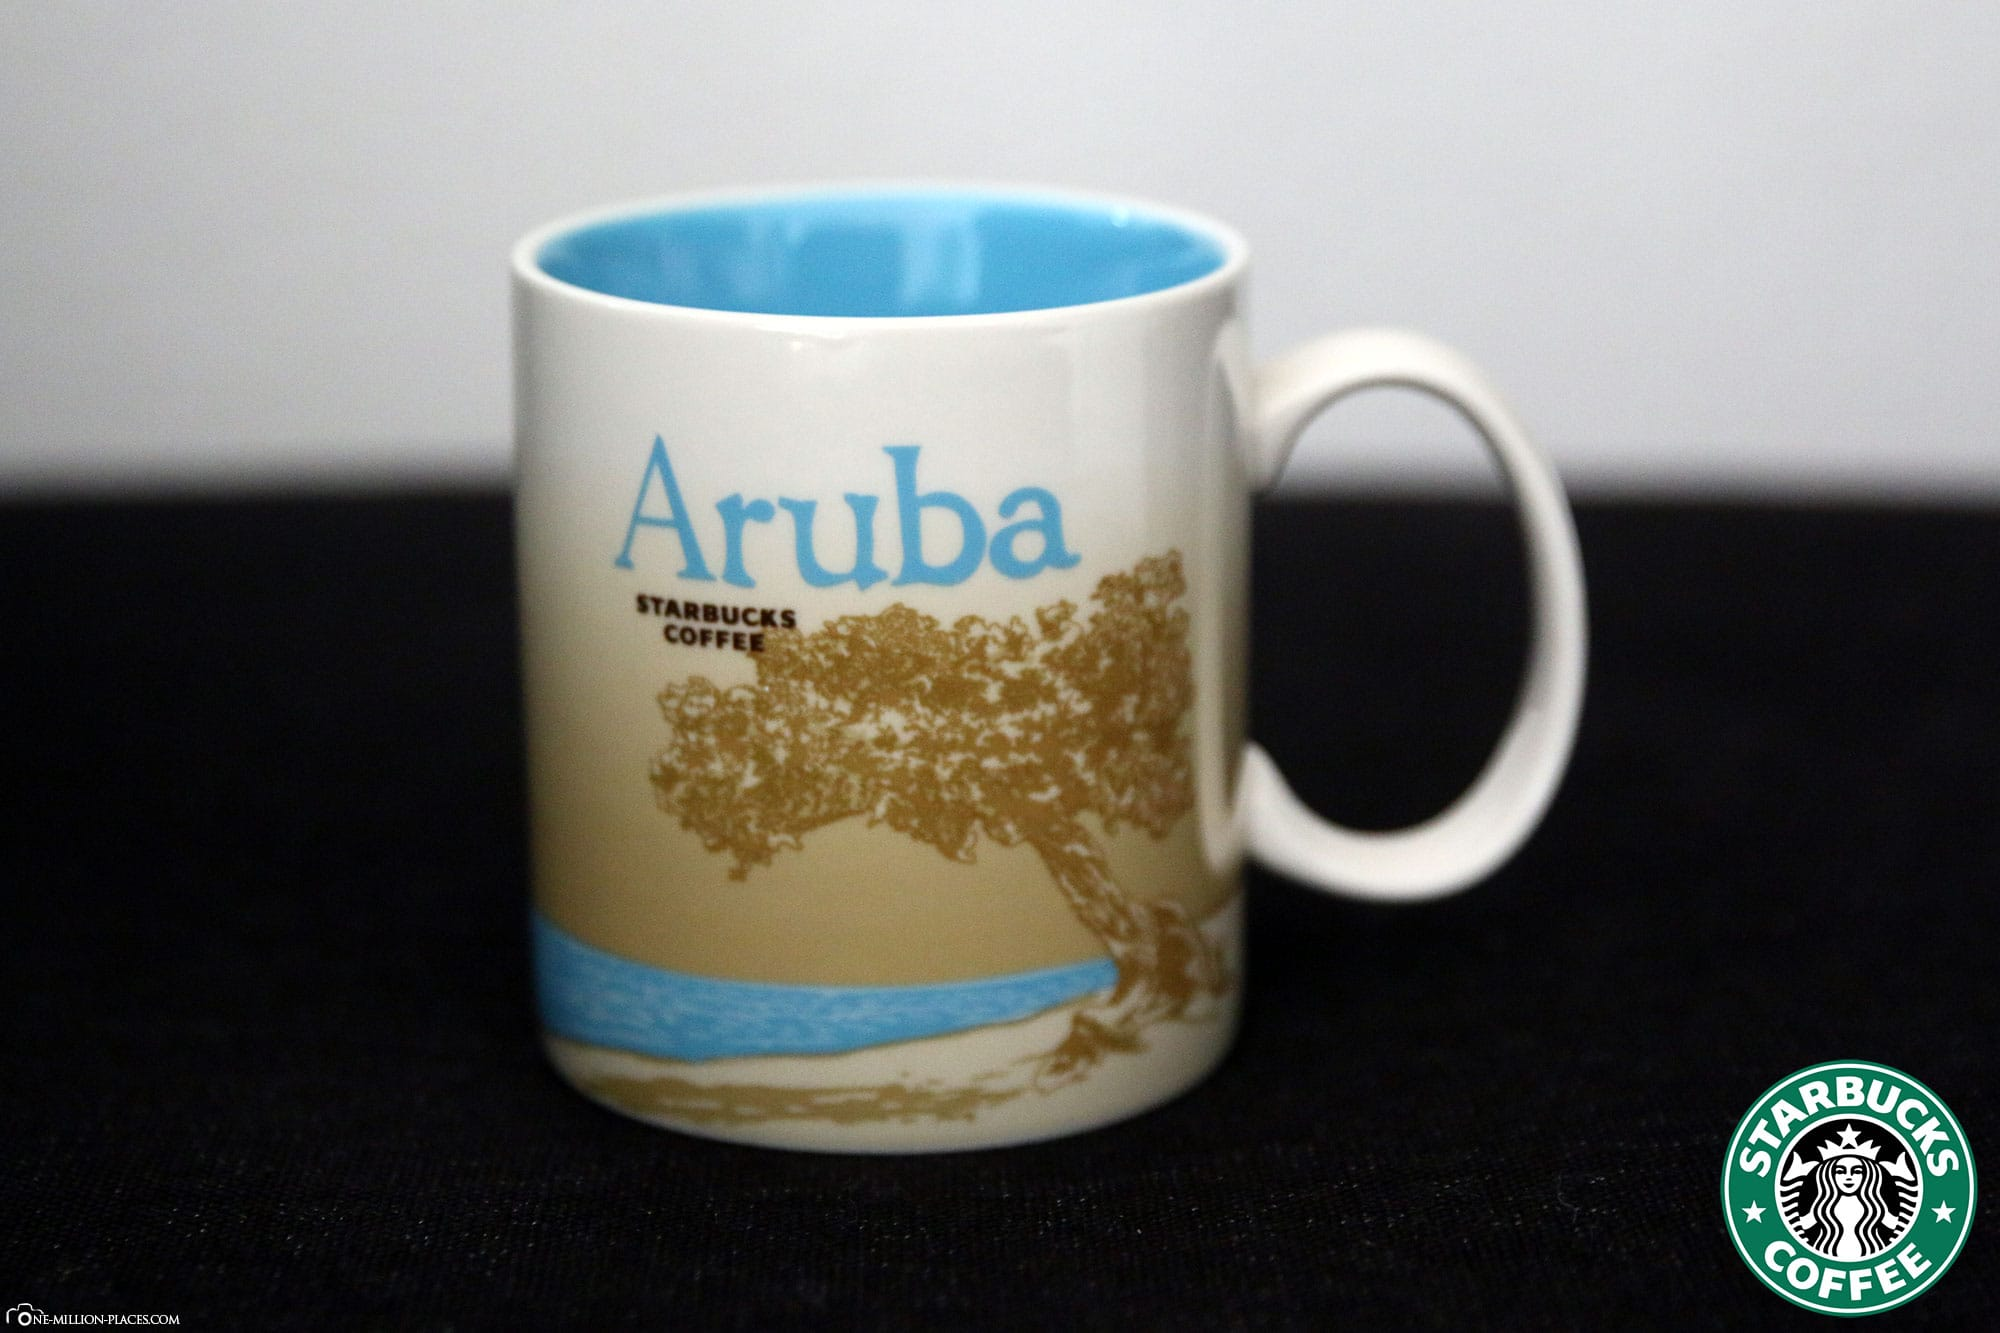 Aruba, Starbucks Cup, Global Icon Series, City Mugs, Collection, ABC Islands, Travelreport